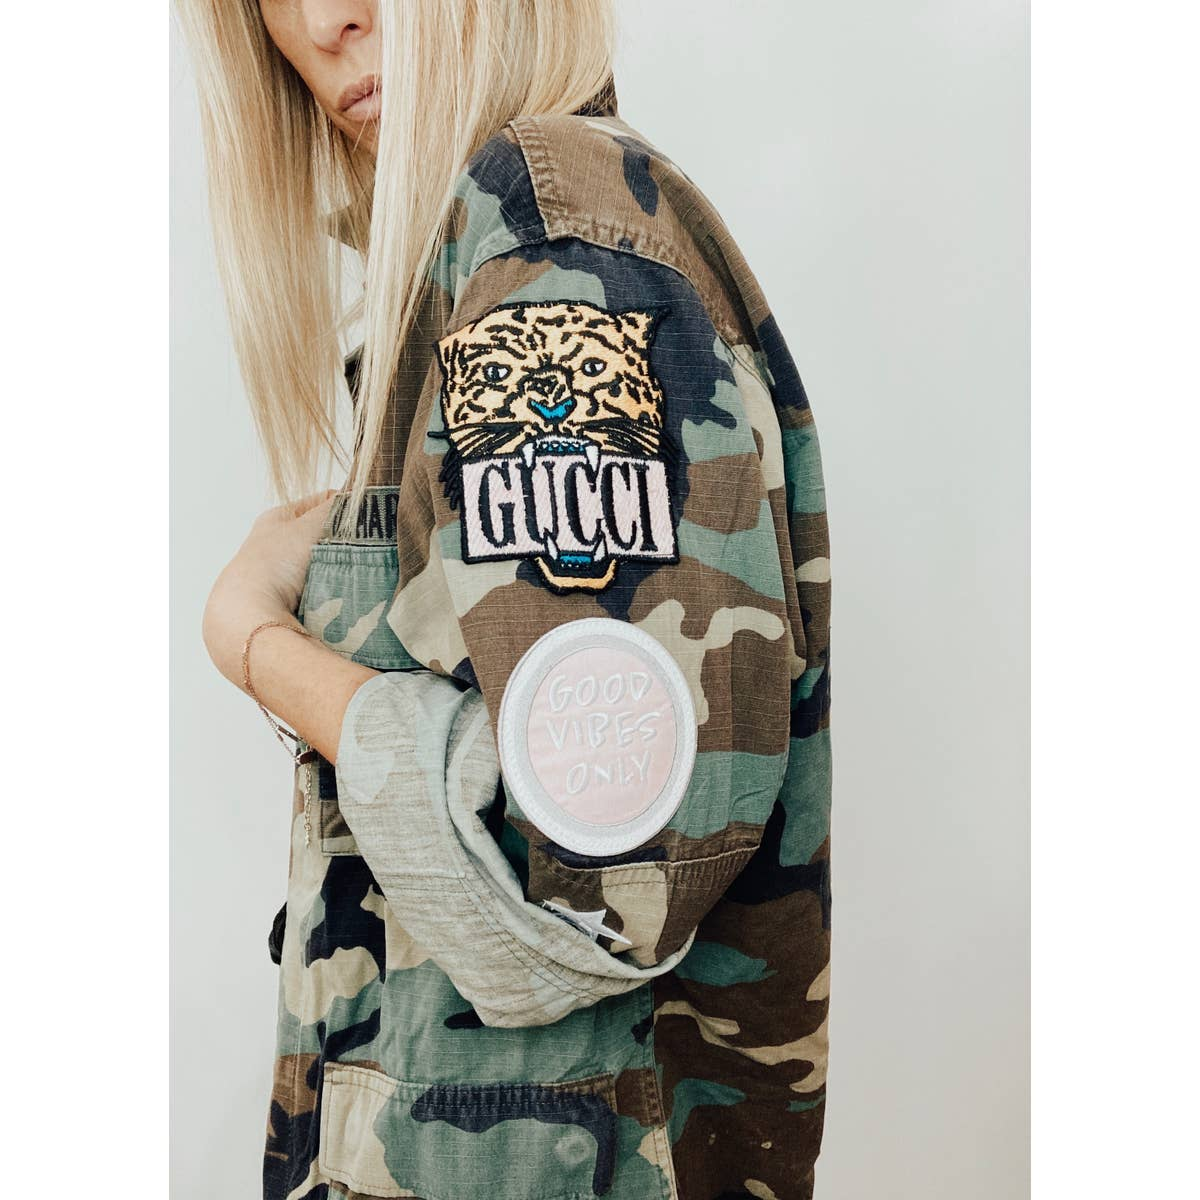 Vintage G-Thang Kitten Club Army Jacket